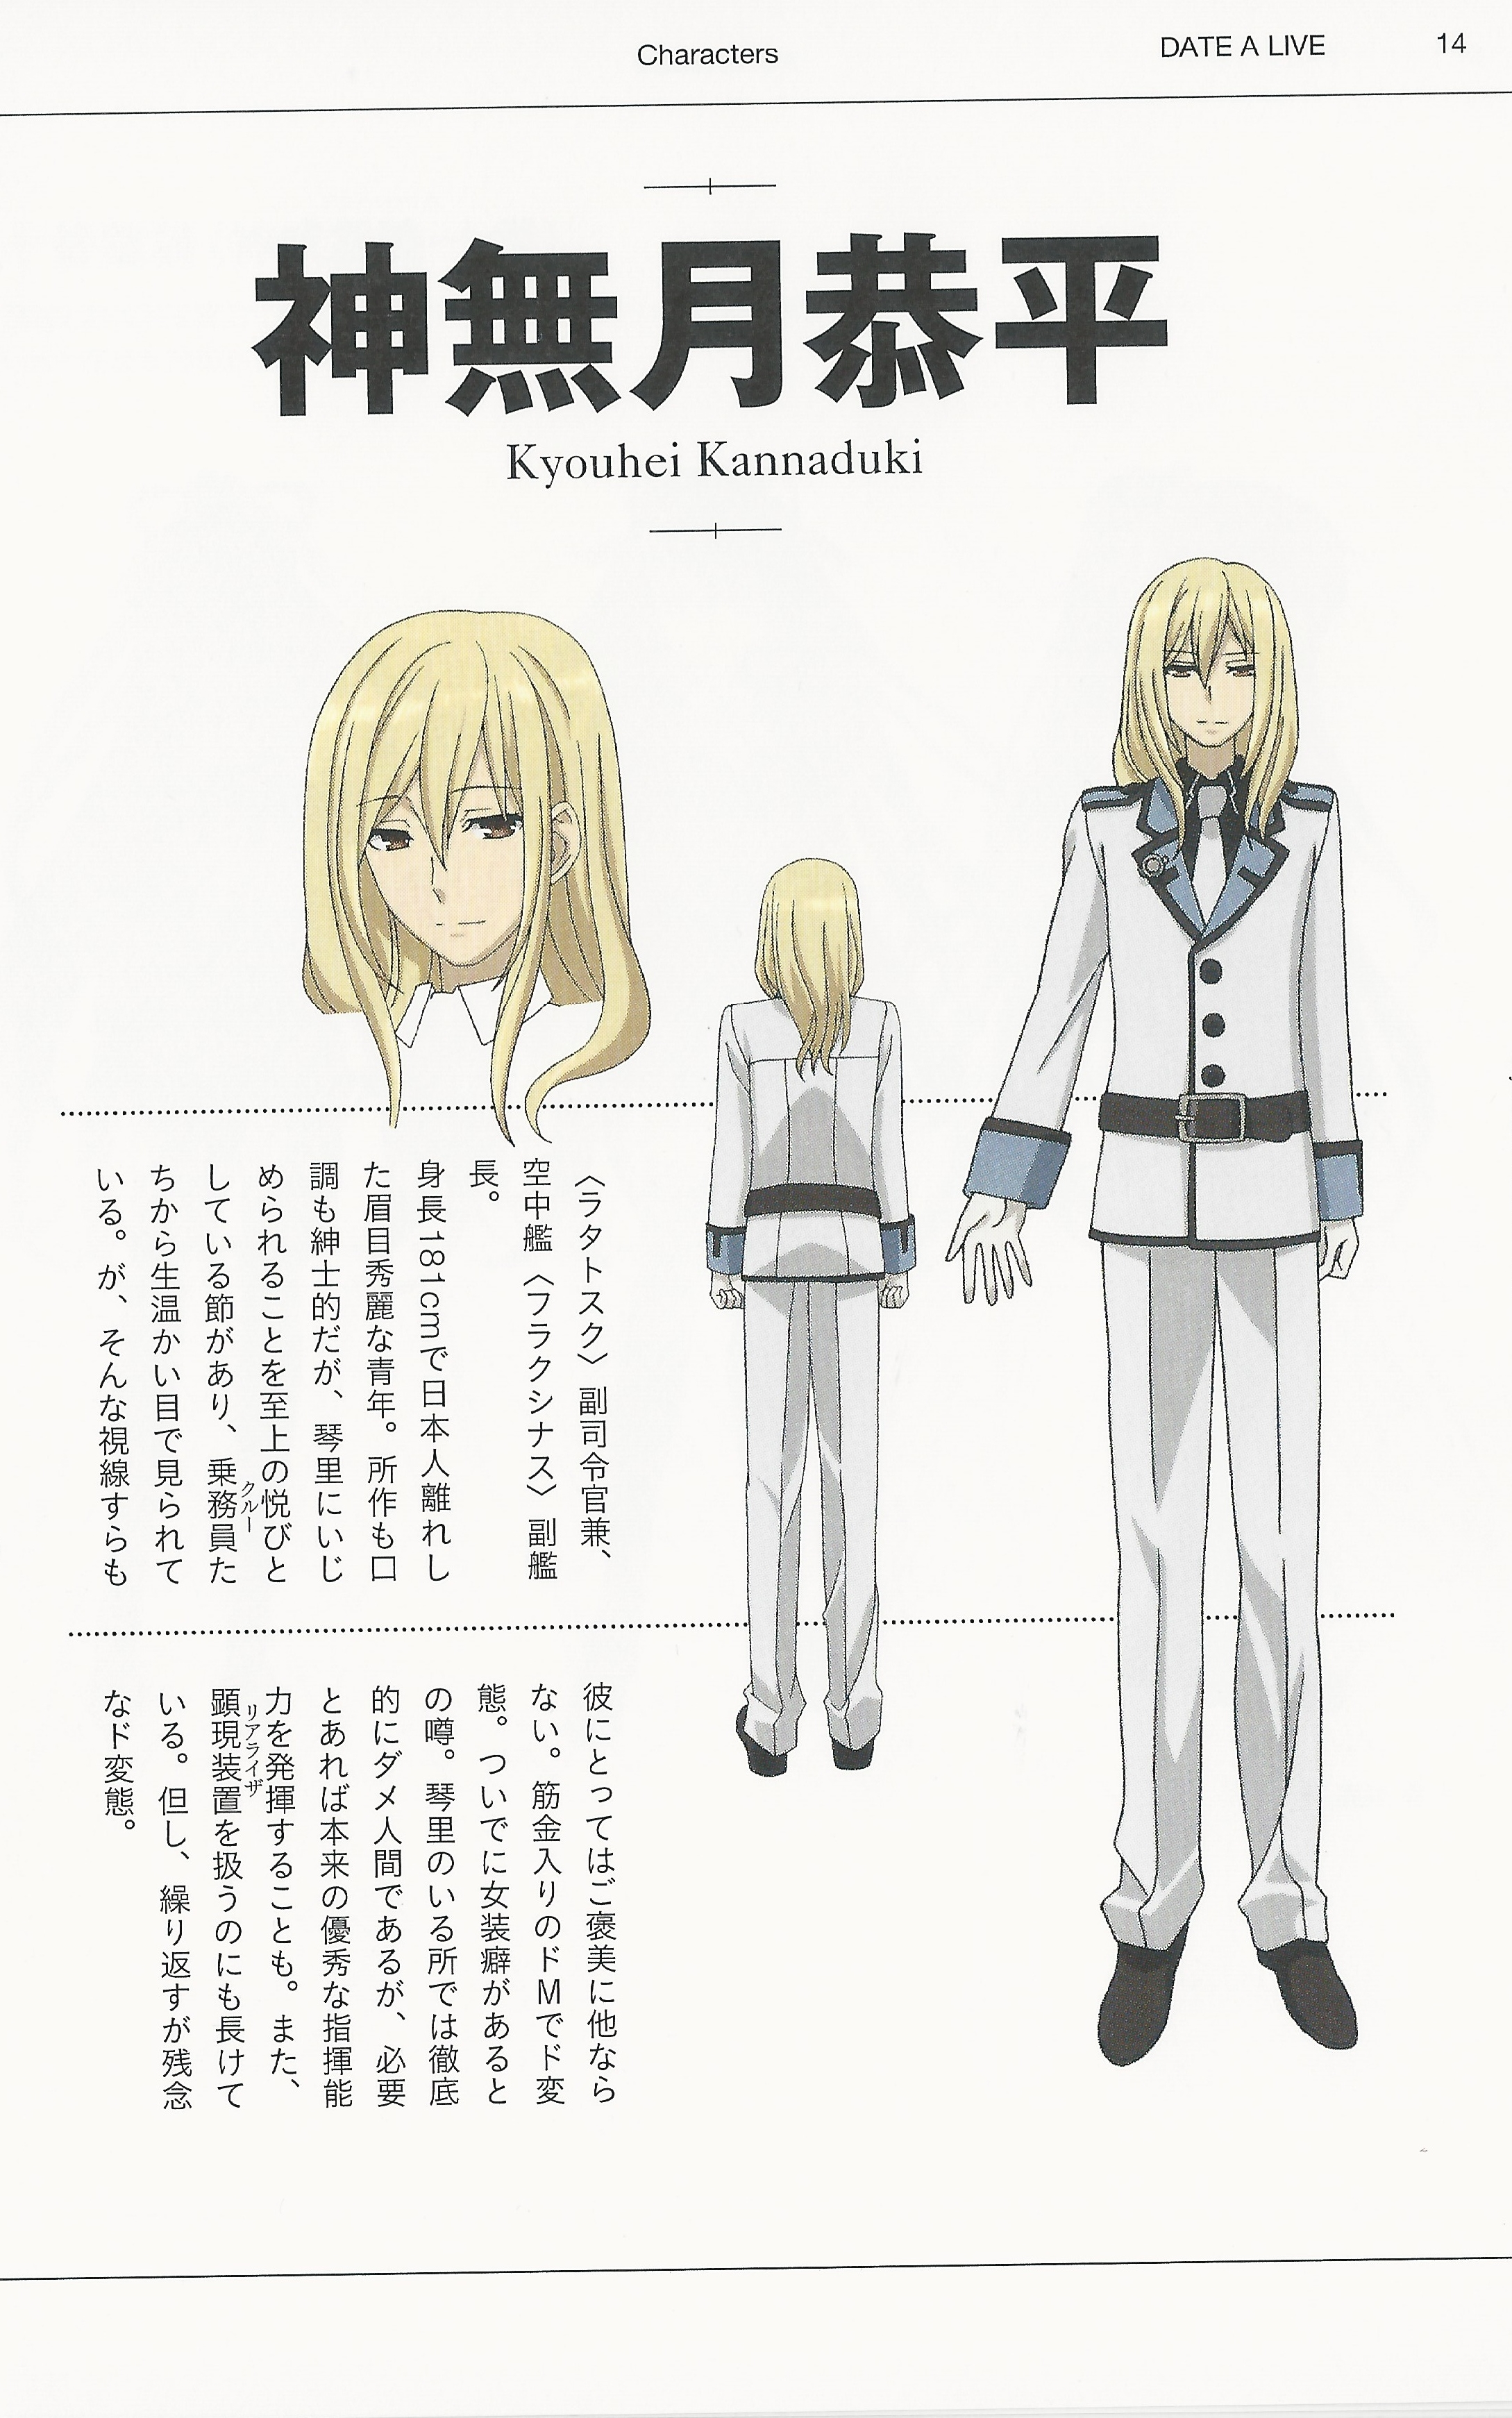 Kyouhei Cosplay Costume from Date A Live